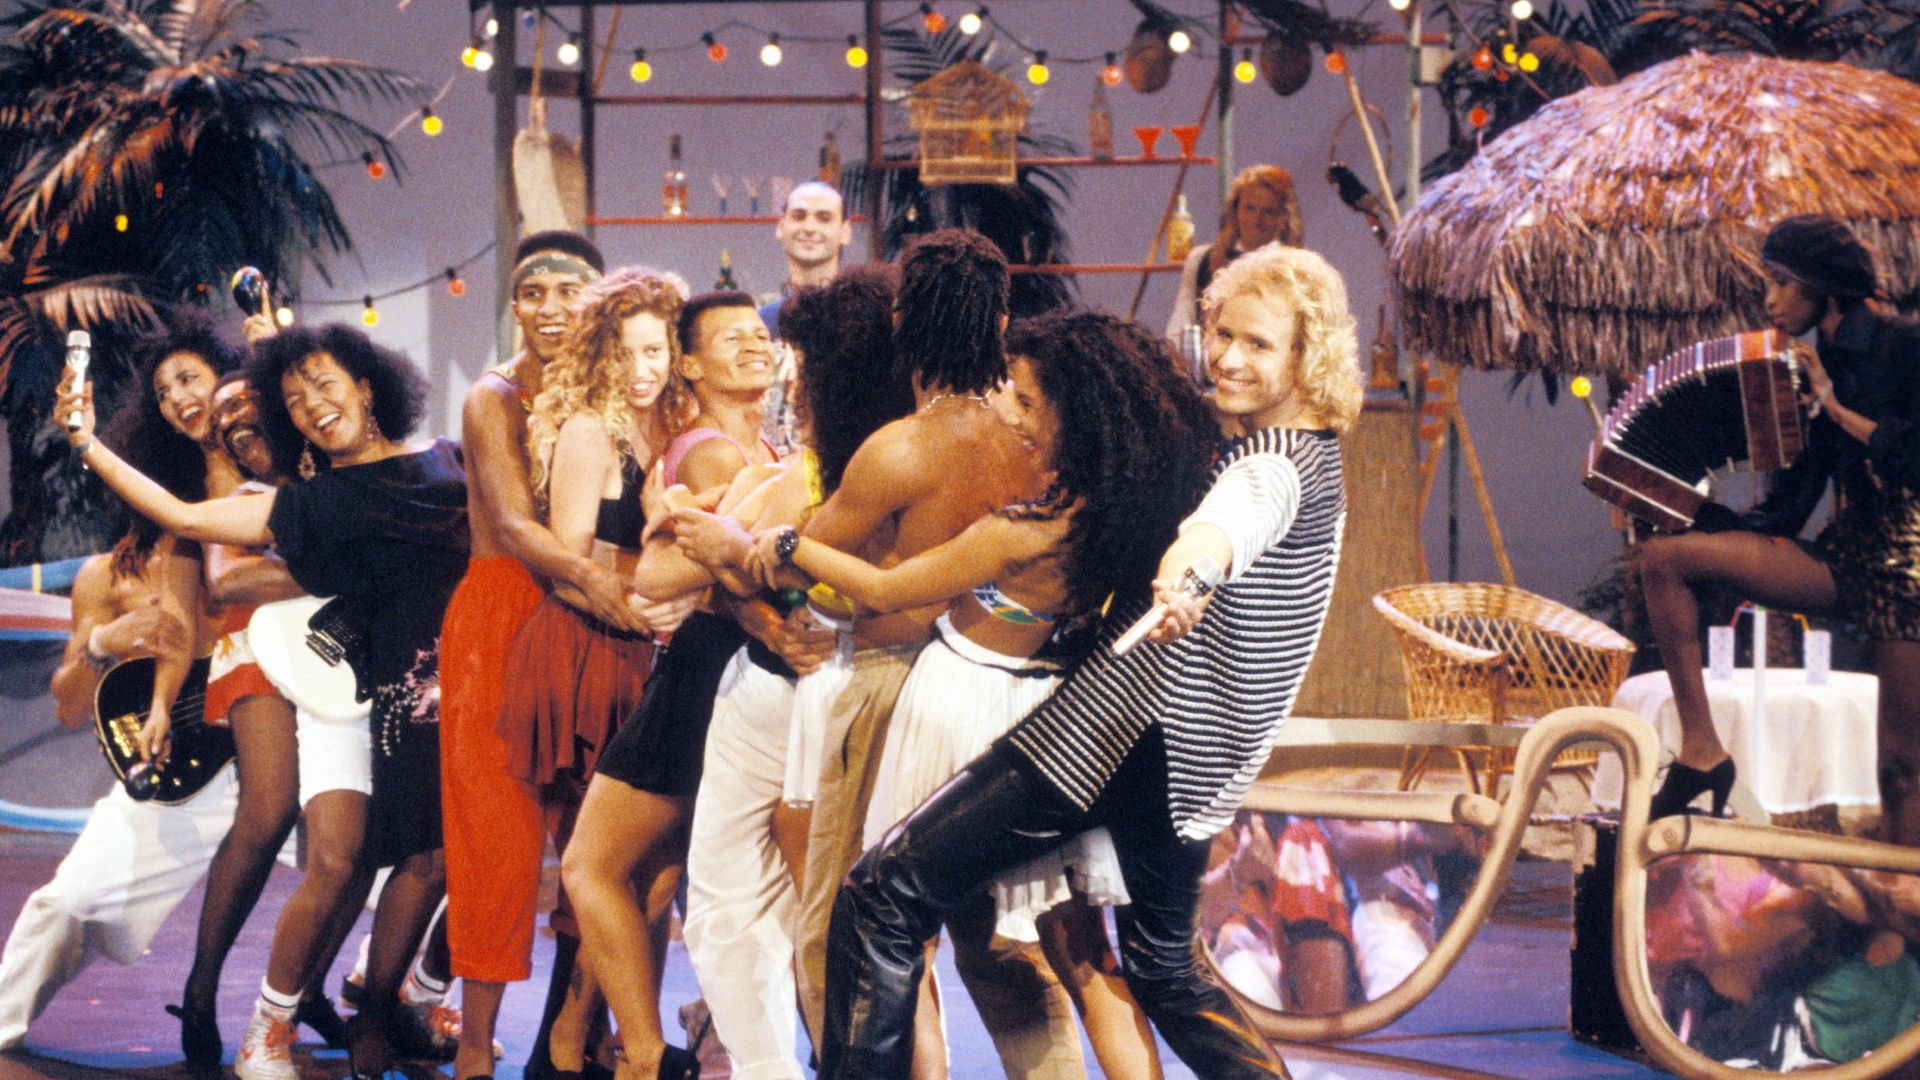 Kaoma on German TV show Wetten, dass?, September 1989 - Credit: Photo by Peter Bischoff/Getty Images